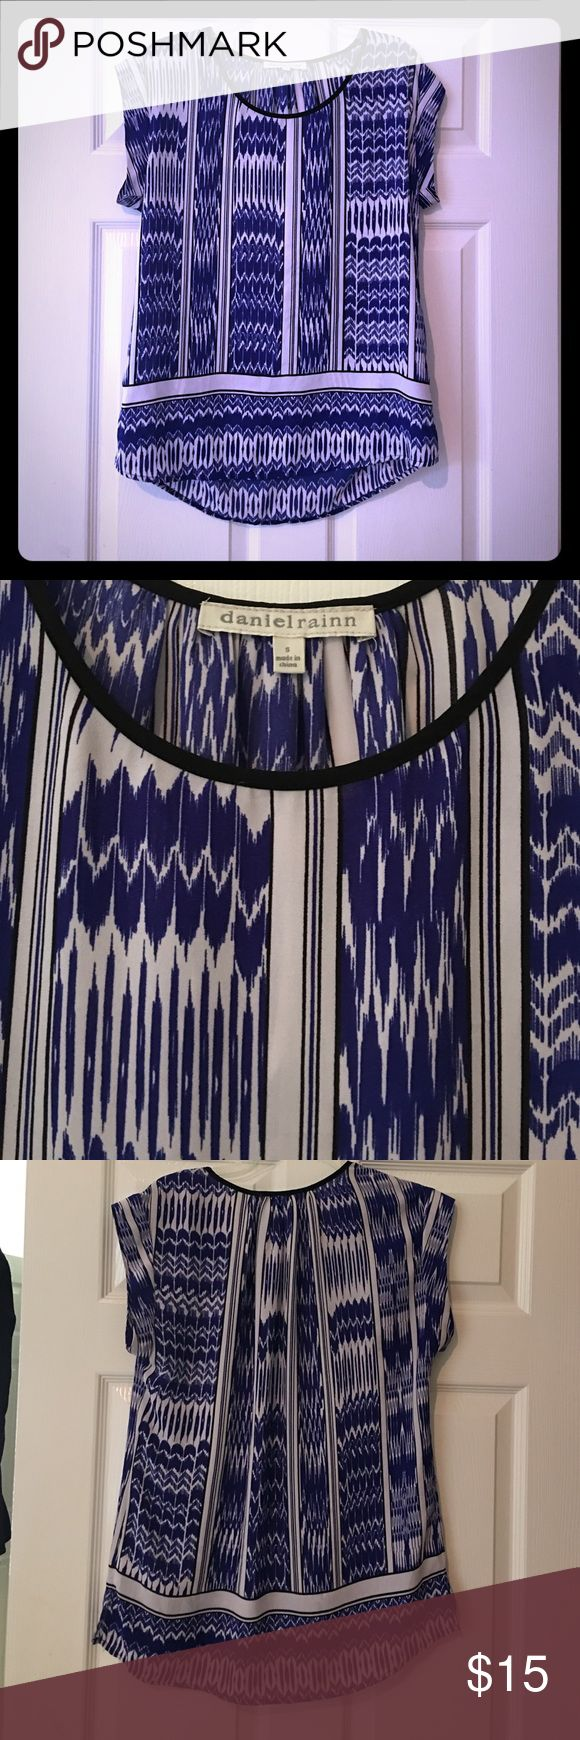 Daniel Rainn blue and white ikat Aztec top Size S. Reposh, didn't fit me quite like I had hoped. No flaws from what I can see.  Daniel Rainn blue and white ikat Aztec top Daniel Rainn Tops Blouses